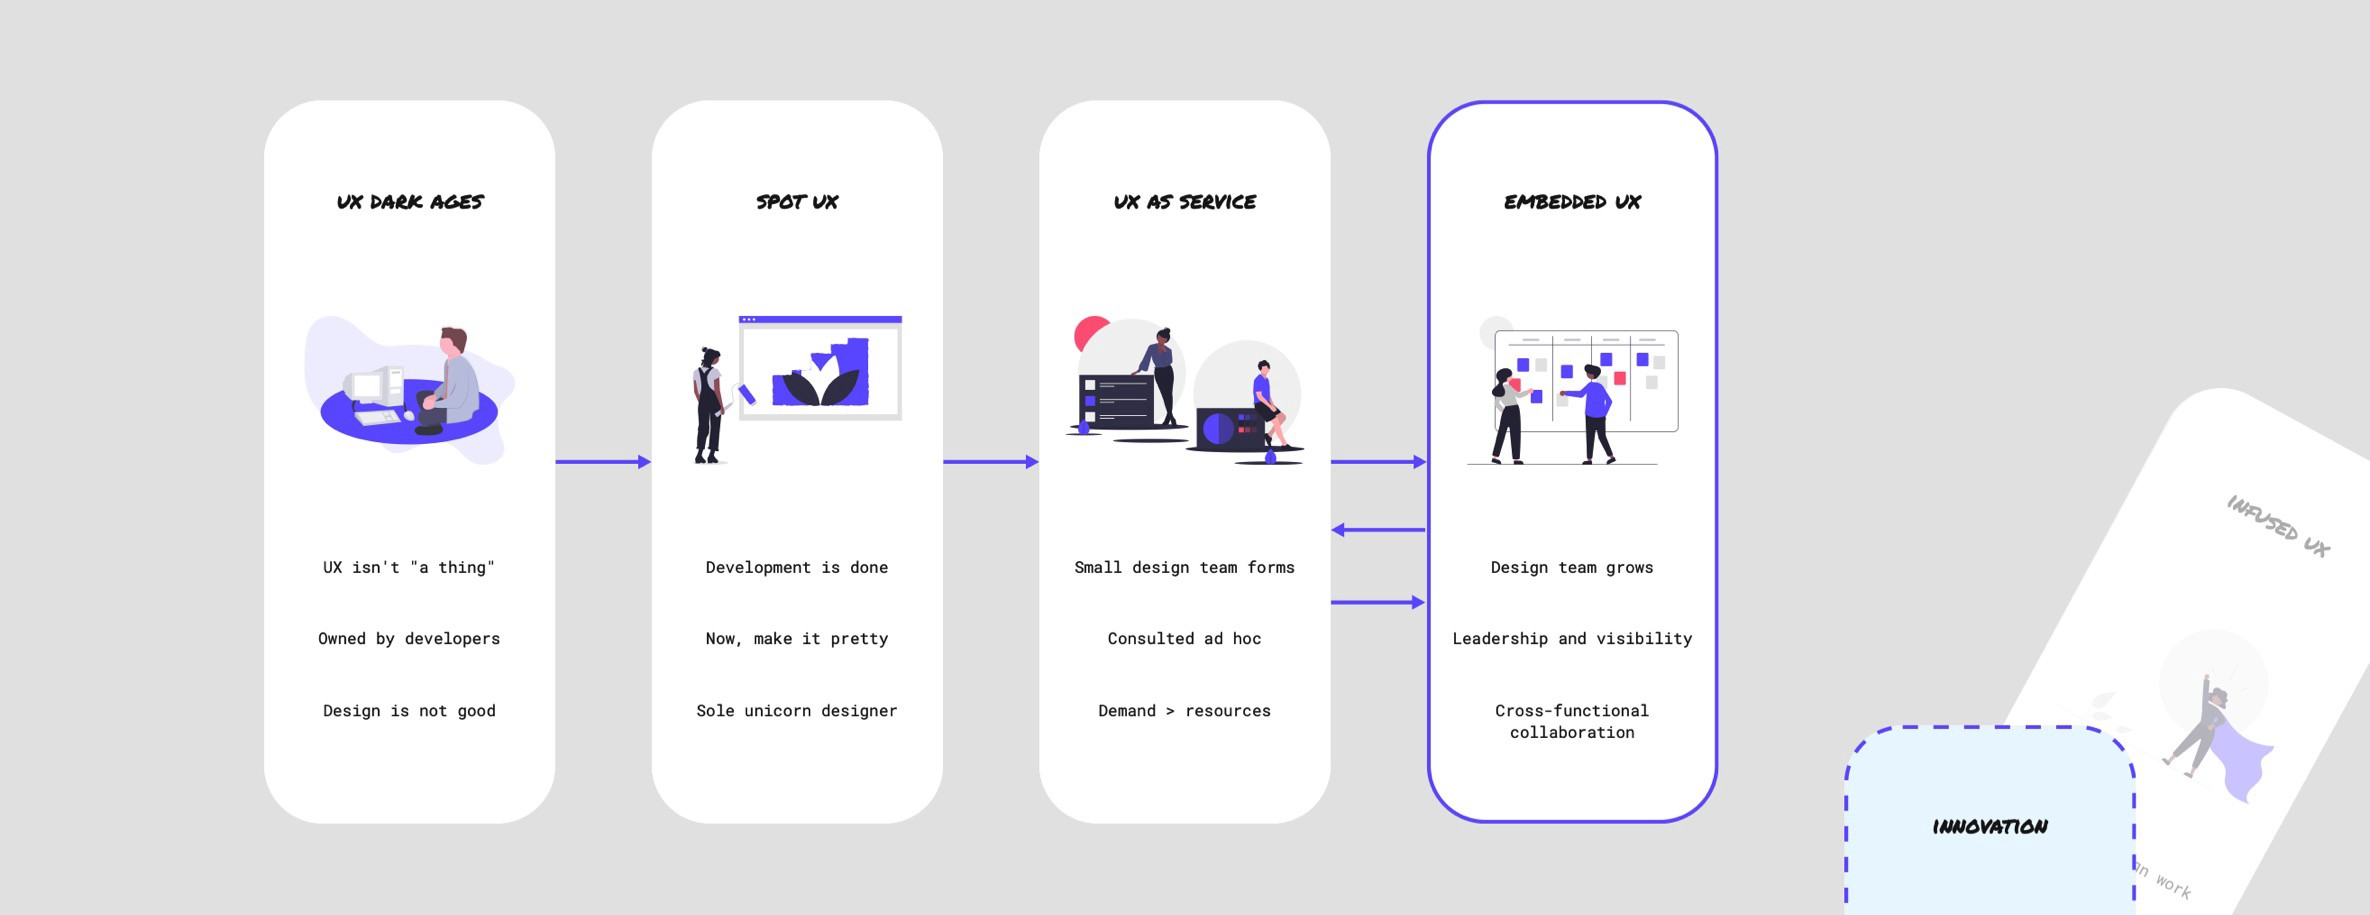 The introduction of Innovation, in place of Infused UX, to enable forward movement.